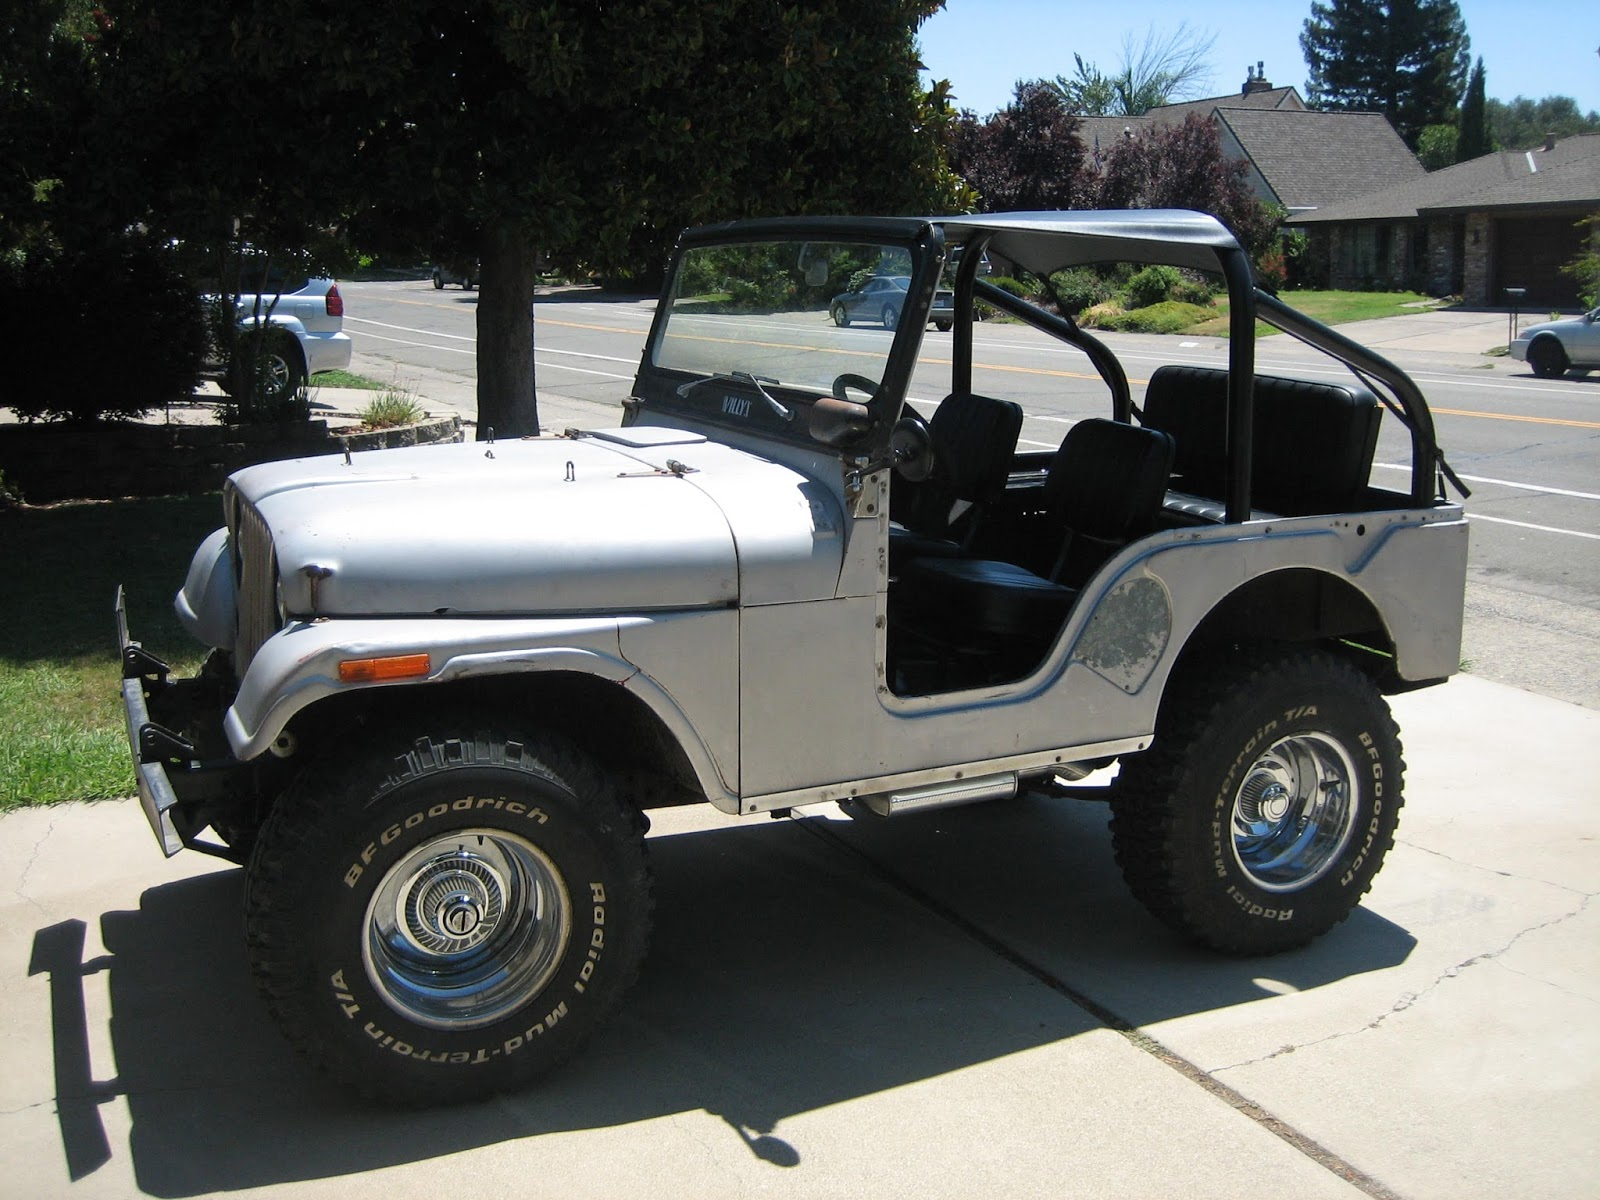 Eric s Garage 1955 Willys M38A1 the miliary spec CJ5 Jeep